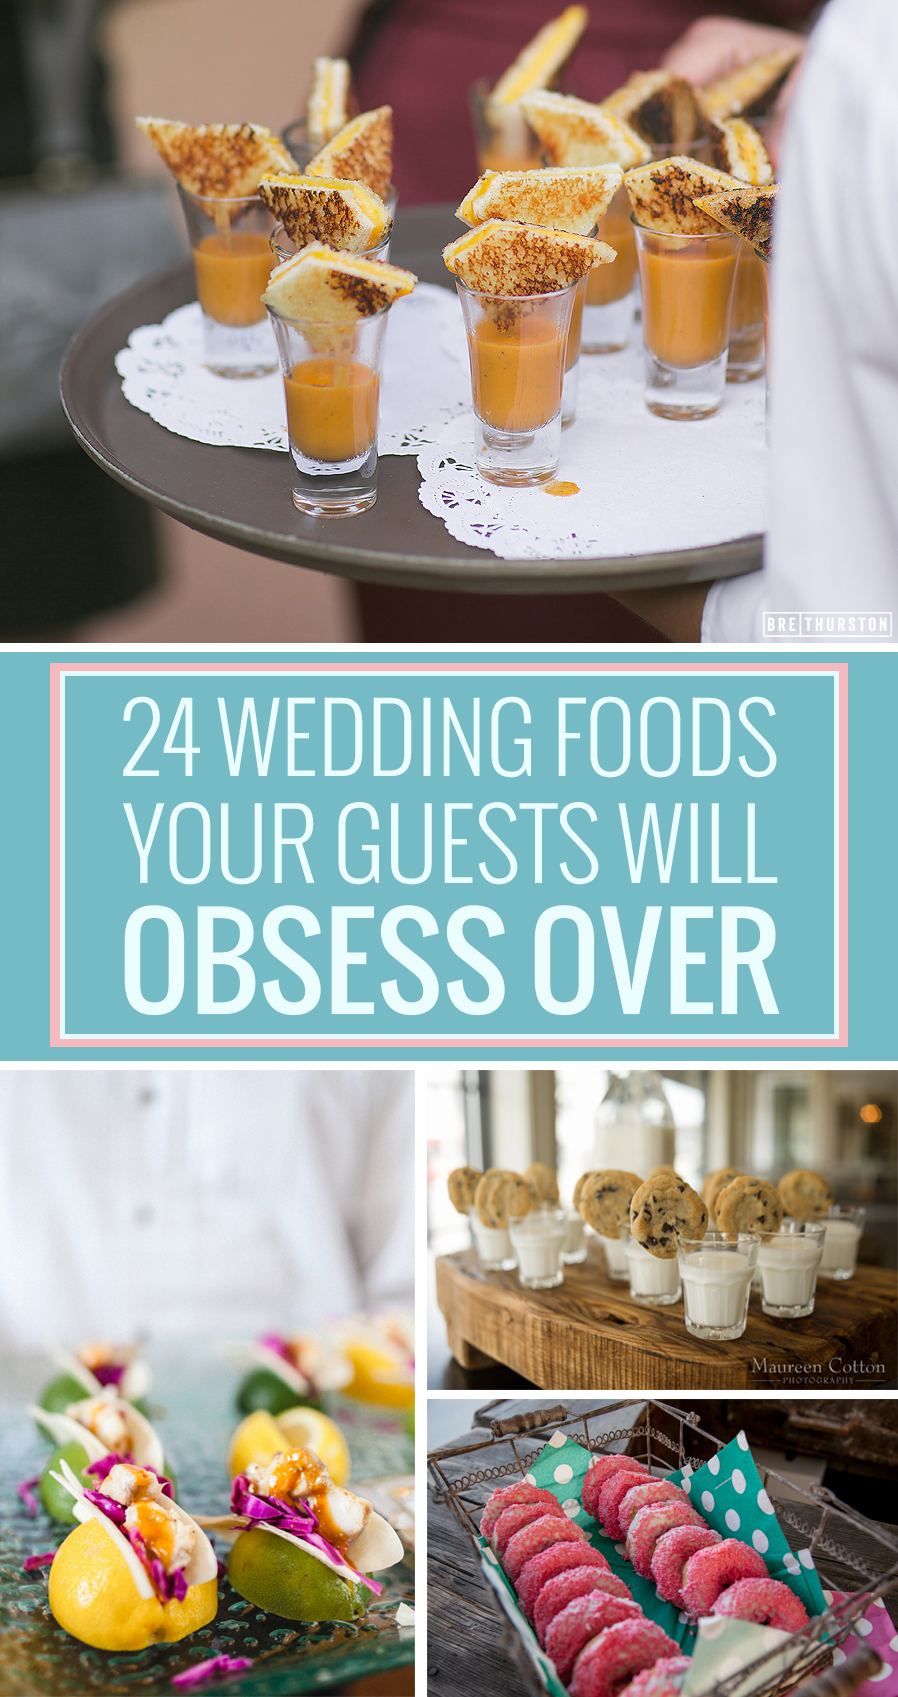 24 Unconventional Wedding Foods Your Guests Will Obsess Over | HuffPost